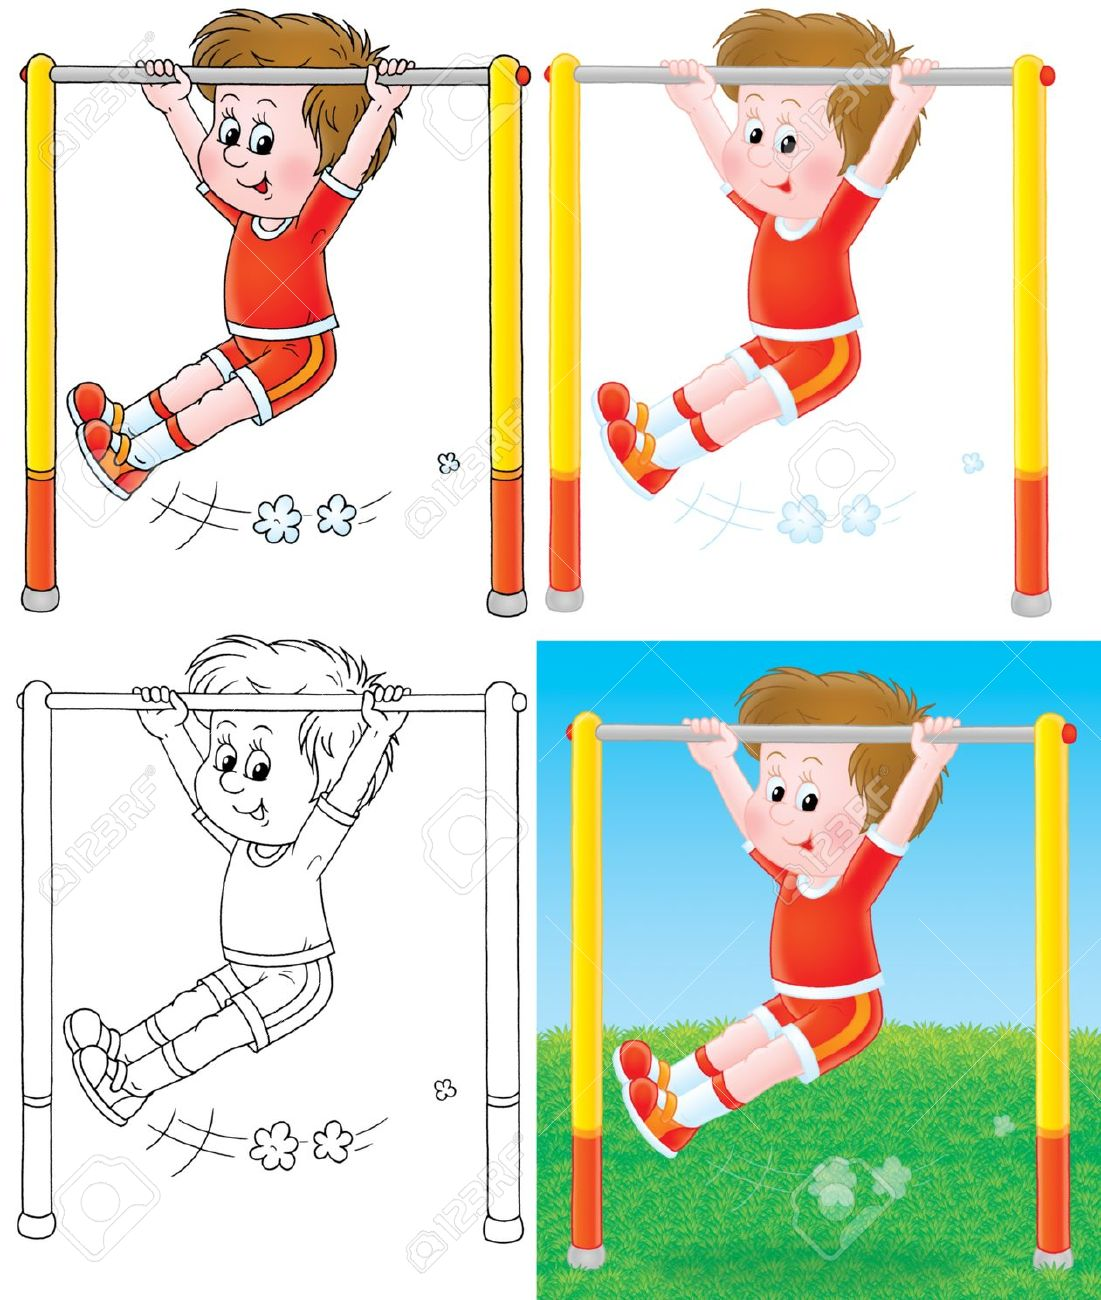 Boy Training On A Horizontal Bar Stock Photo, Picture And Royalty.